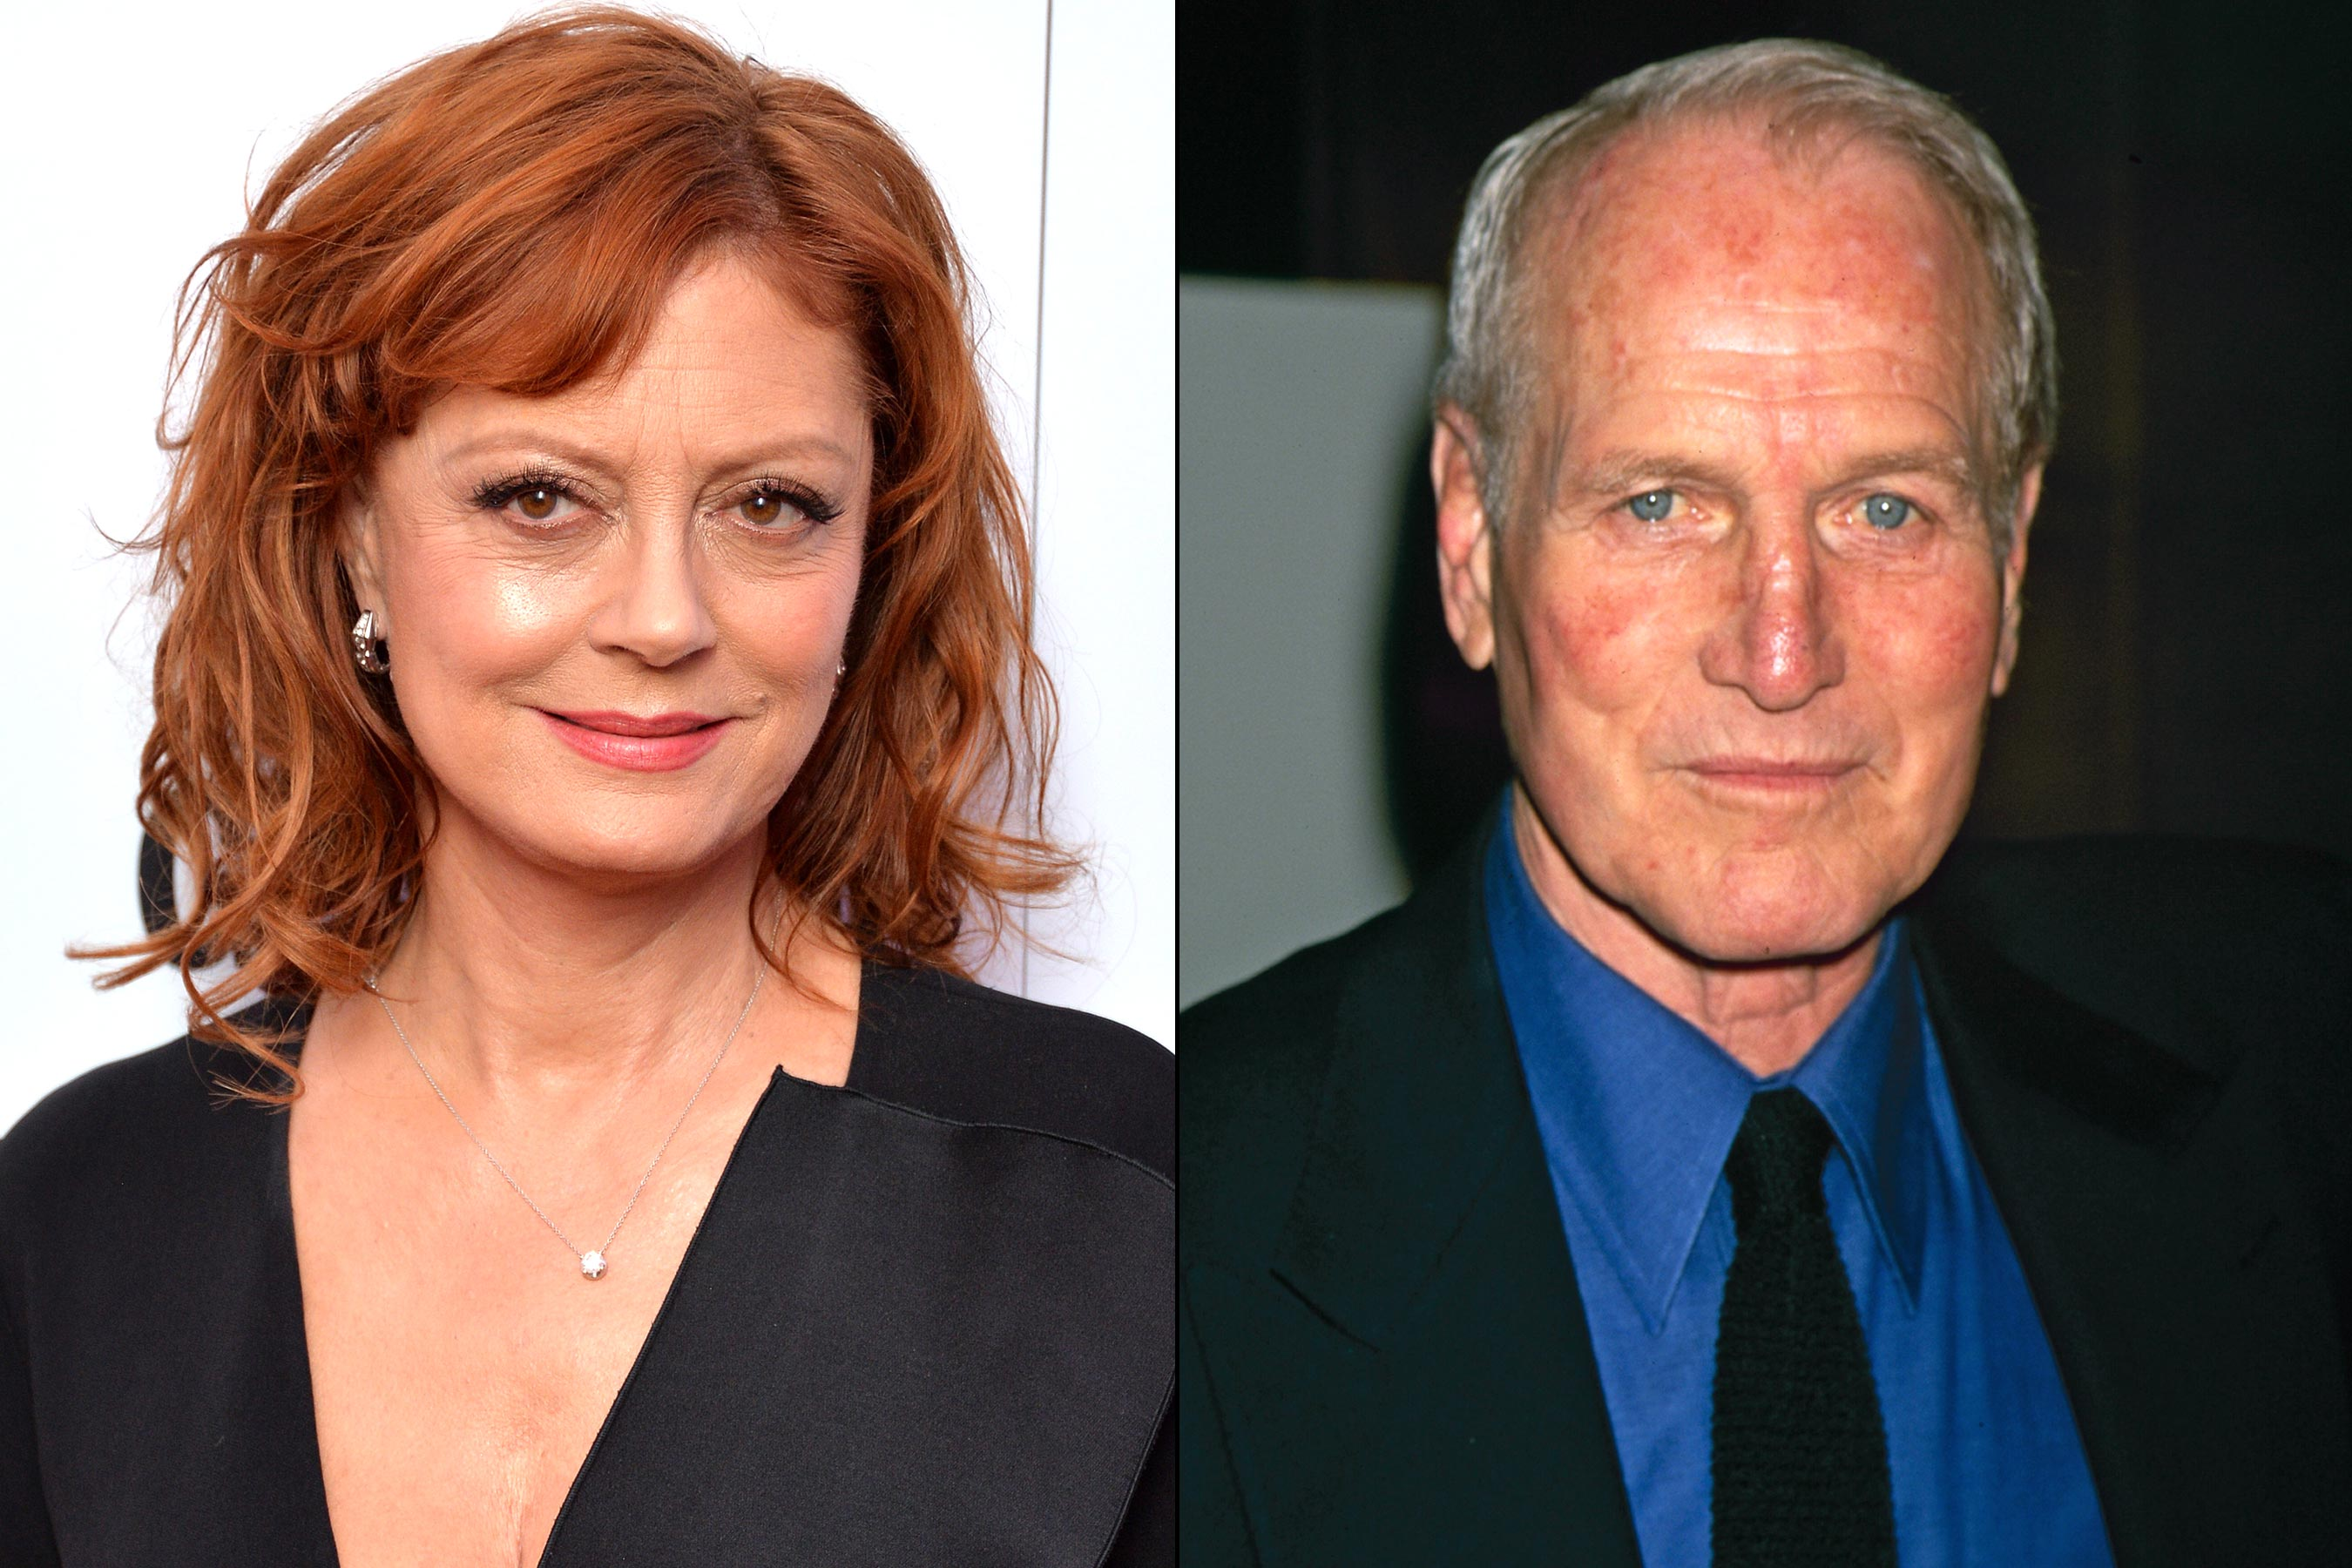 Susan Sarandon says Paul Newman once gave her part of his salary